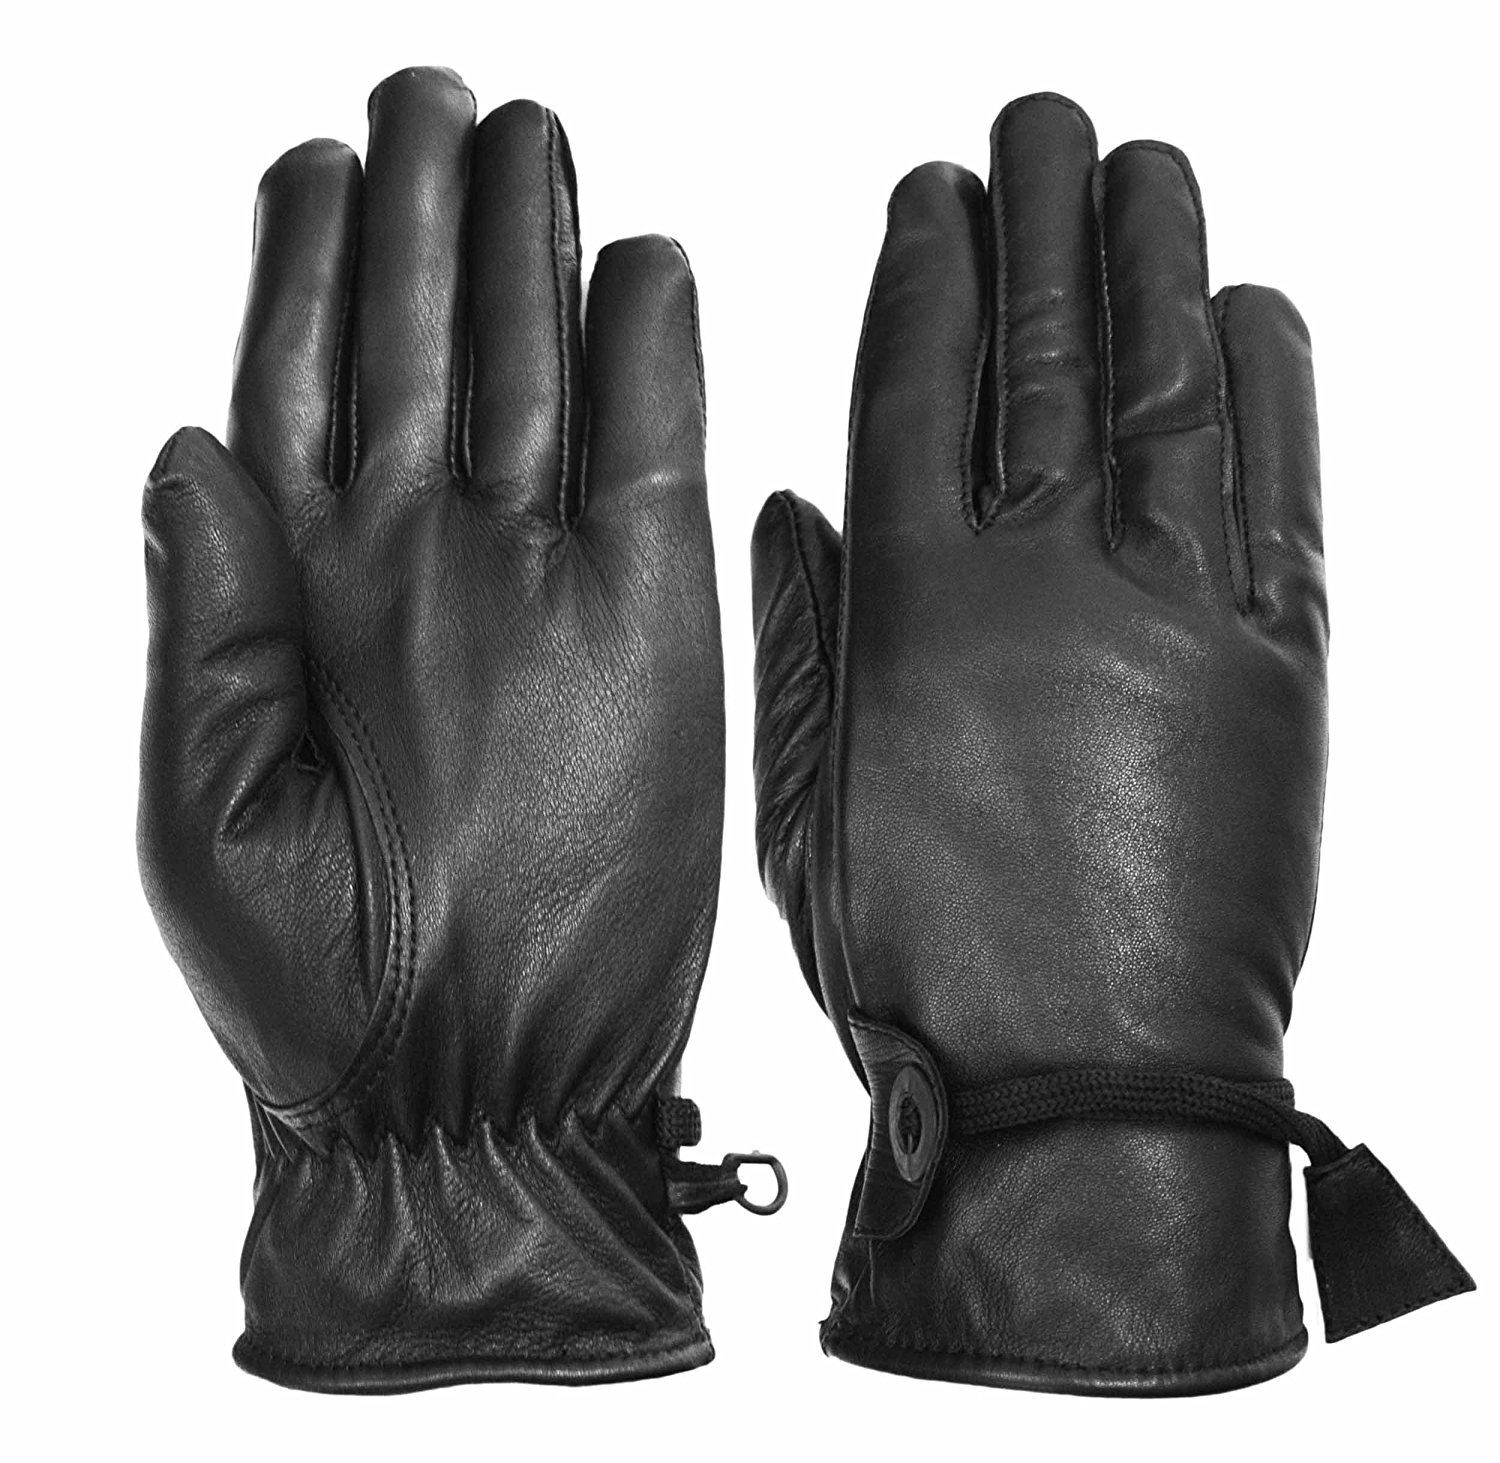 Vance Leathers Women's Premium Lined Motorcycle Riding Gloves - Black - L